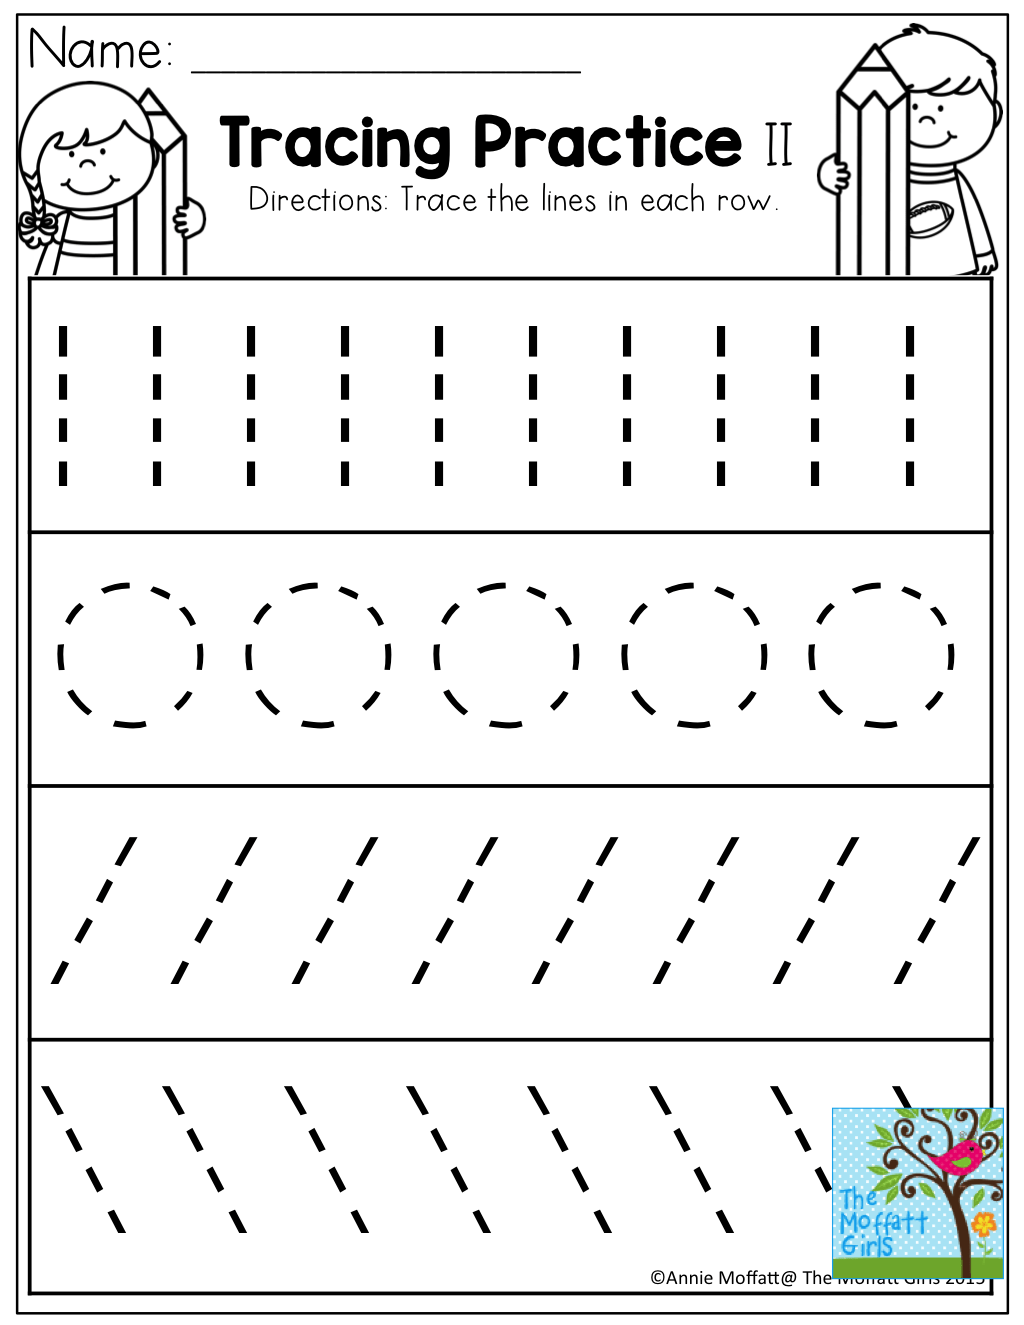 Tracing Practice Tons Of Printable For Pre K Kindergarten 1st Grade 2nd Grade And 3rd Grade